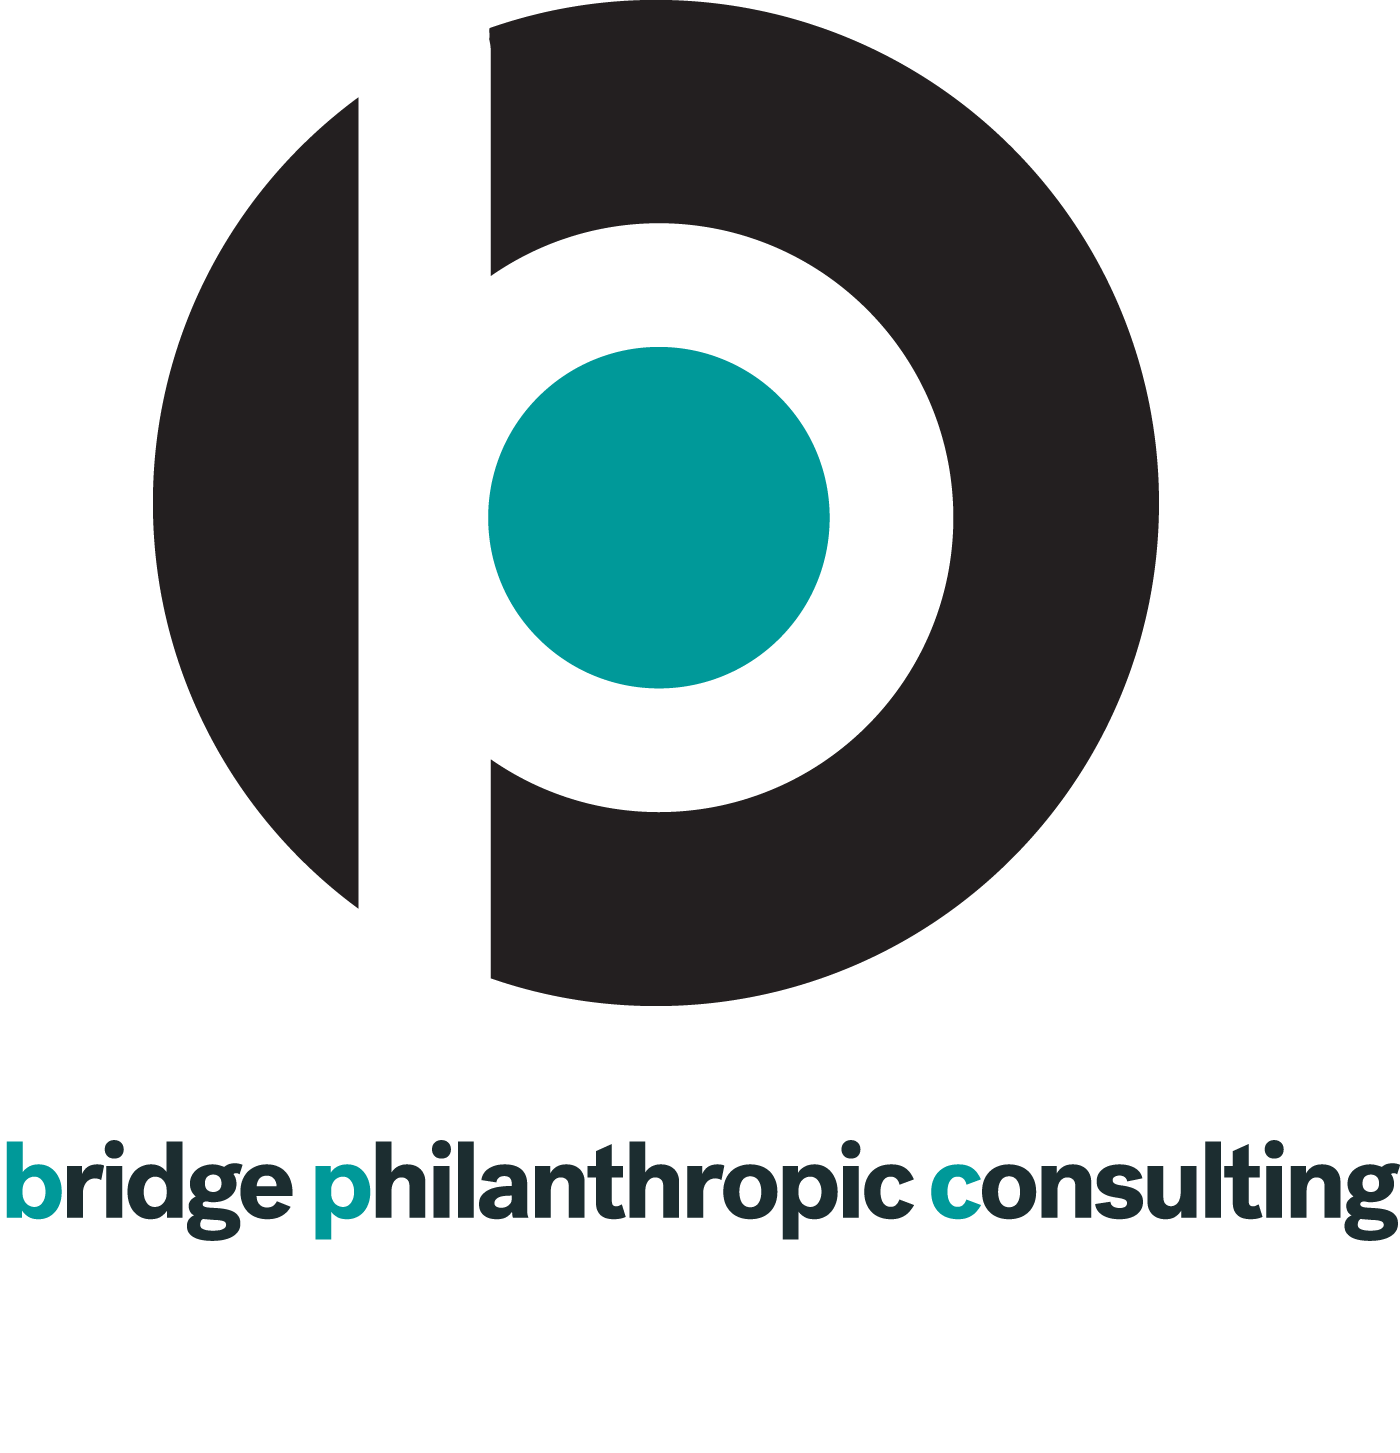 Bridge Philanthropic Consulting | African-American Fundraising Experts